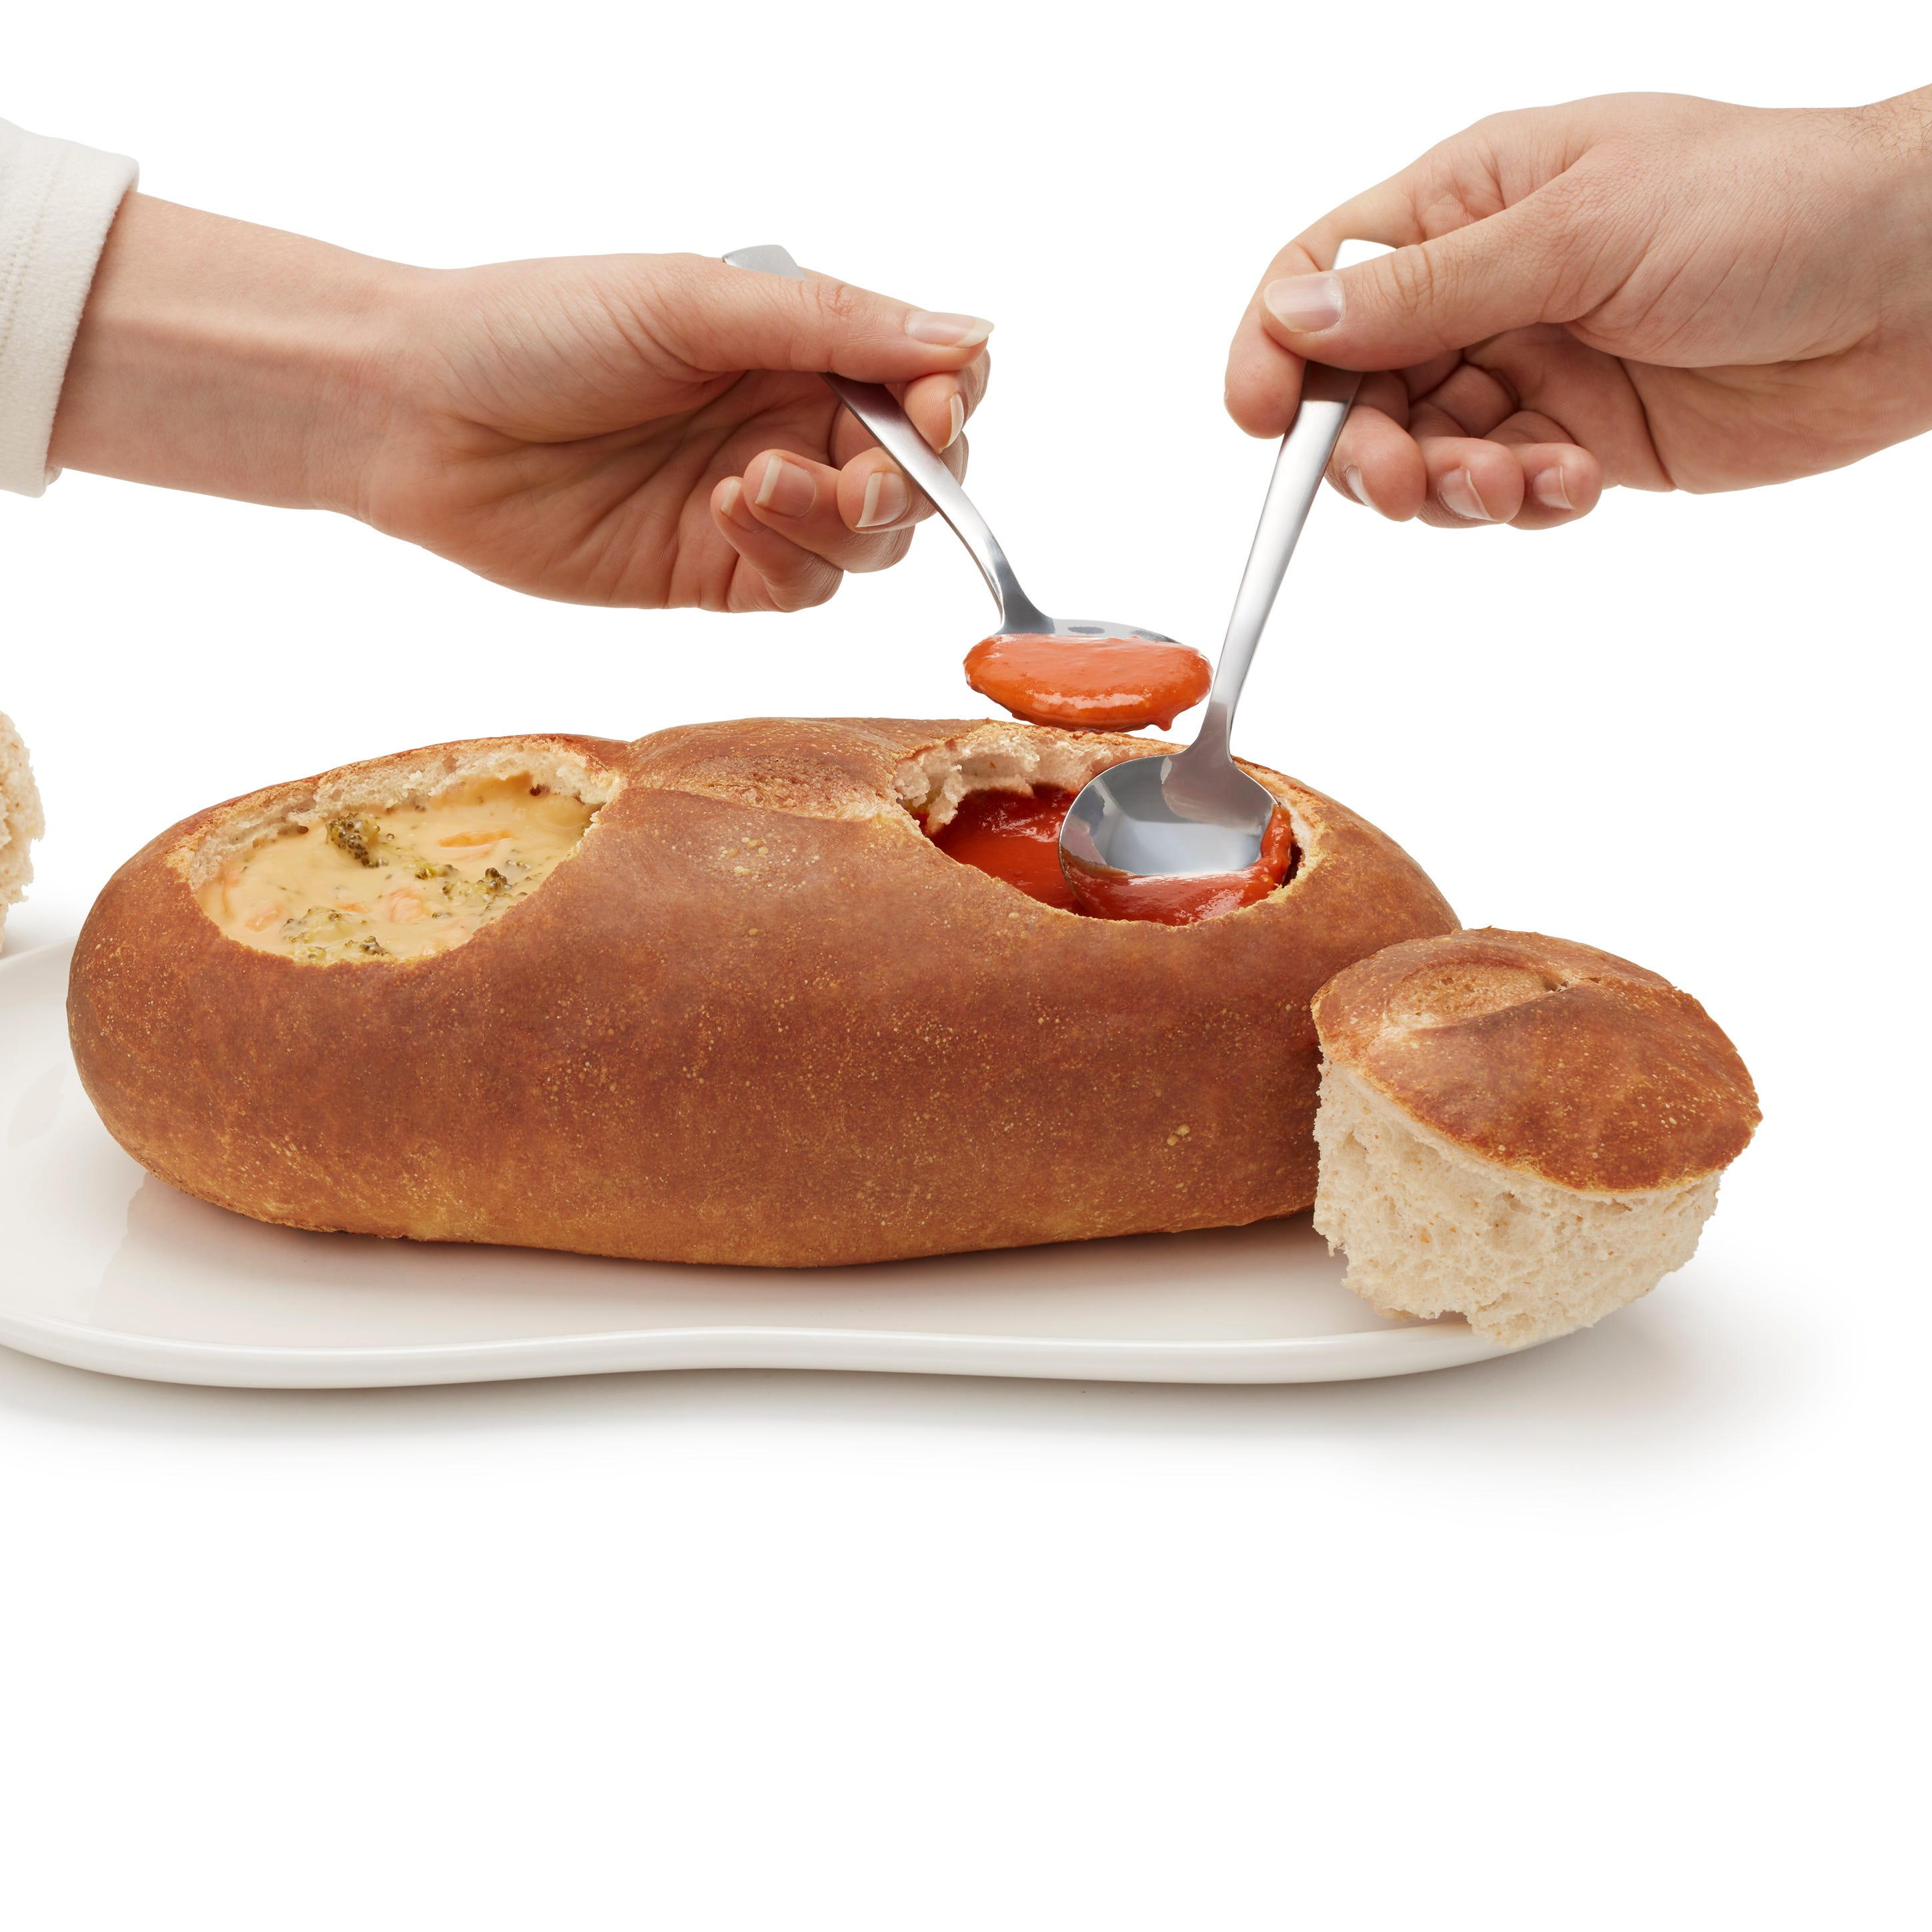 The new Double Bread Bowl from Panera Bread.